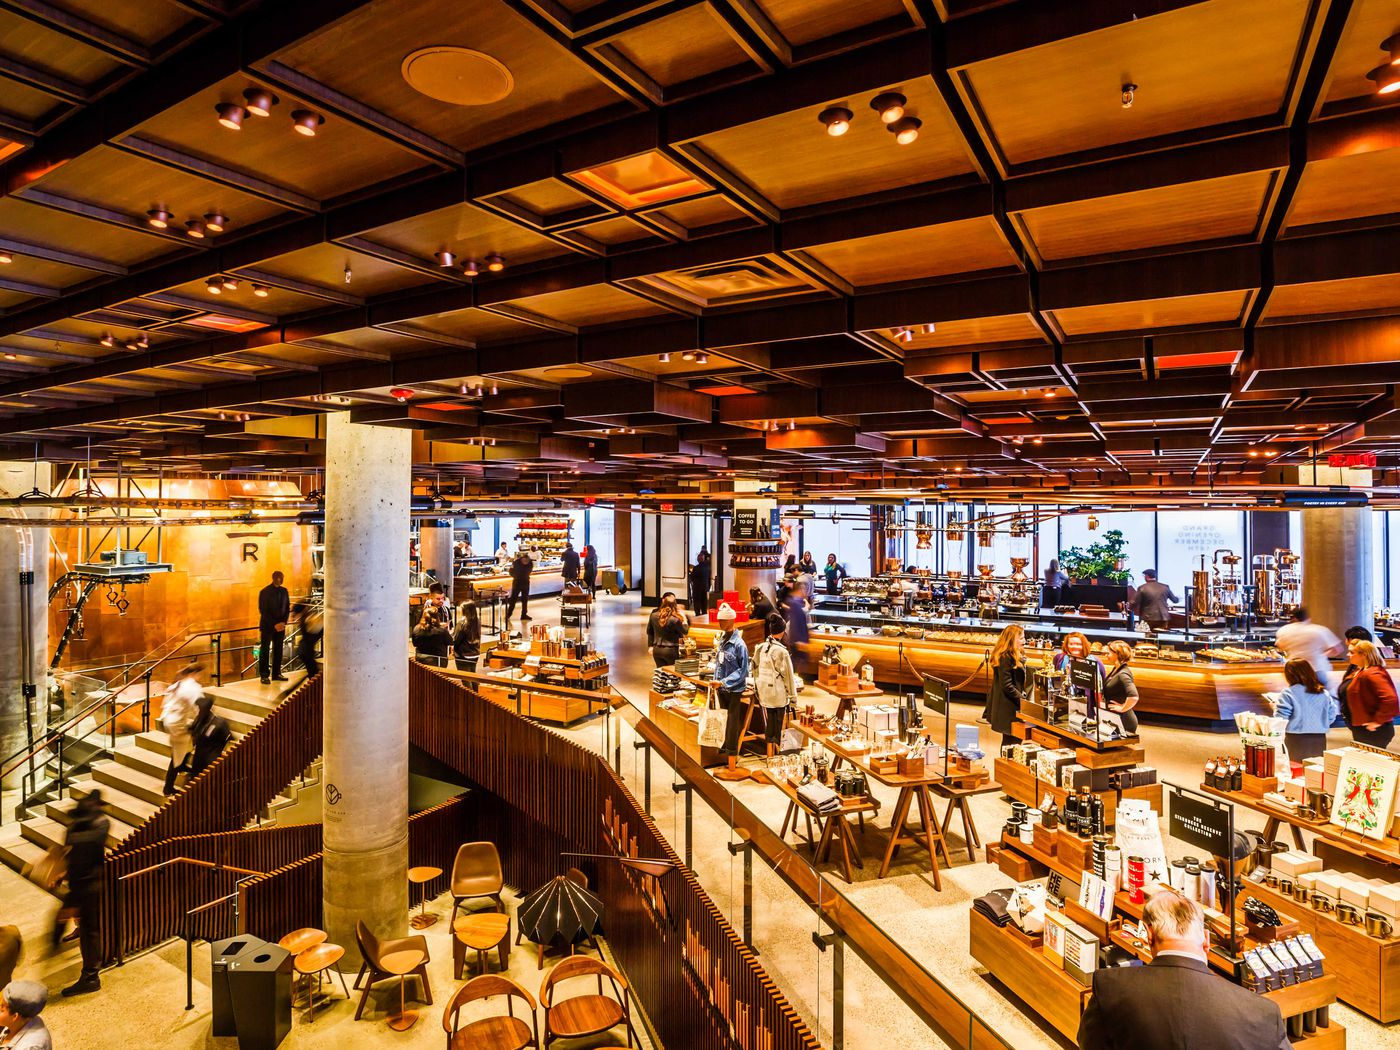 Starbucks Reserve Roastery Opens in Chelsea With 3 Stories   Eater NY 1400x1050